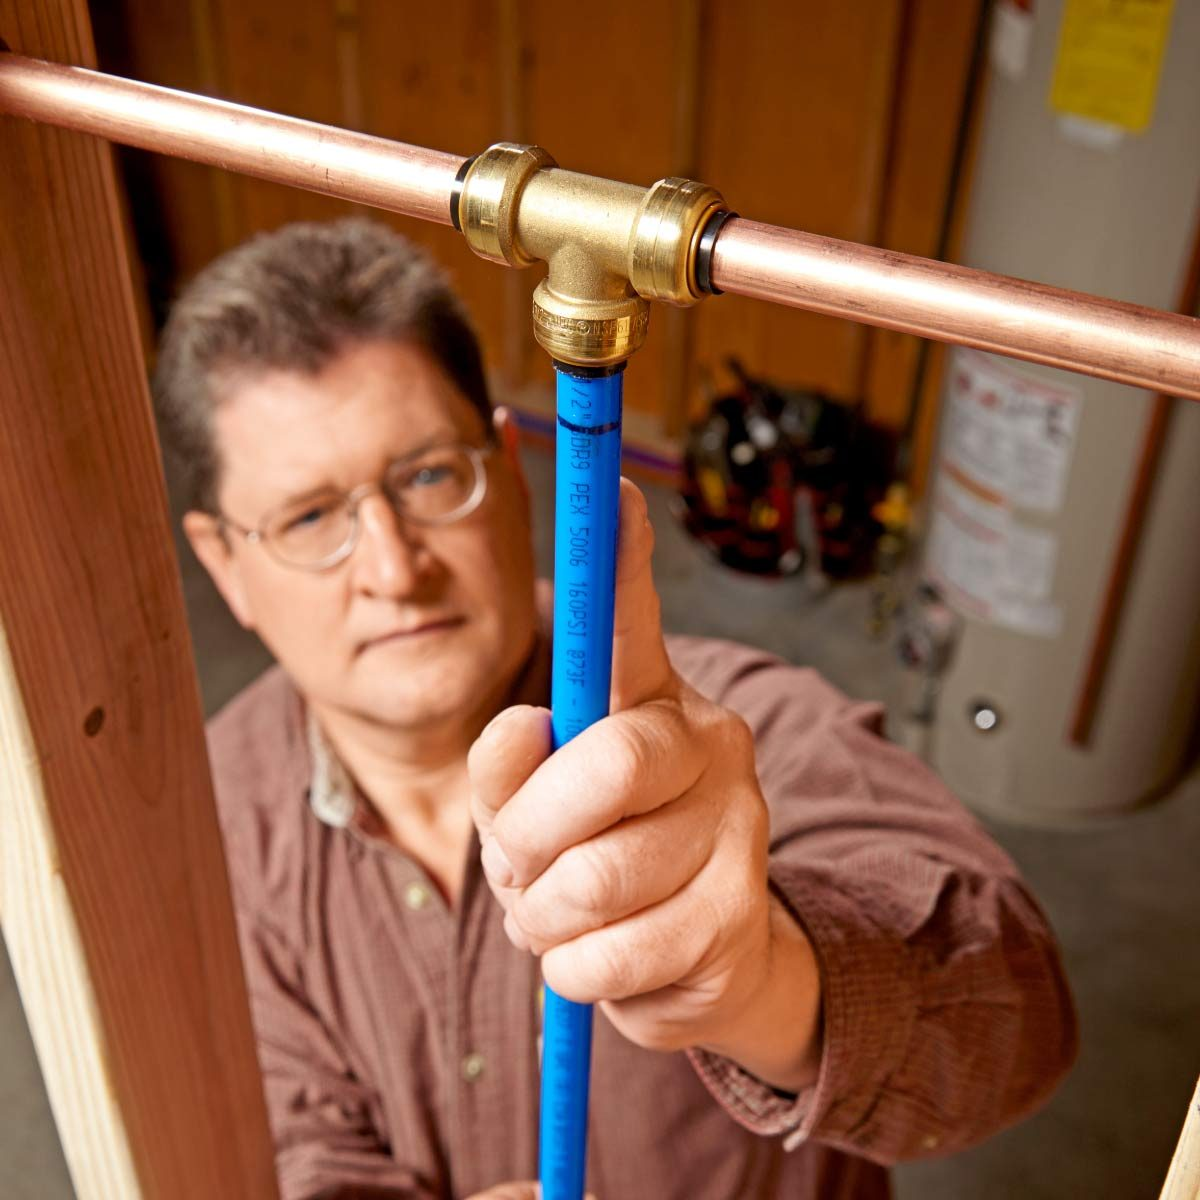 How To Join Dissimilar Pipes Family Handyman